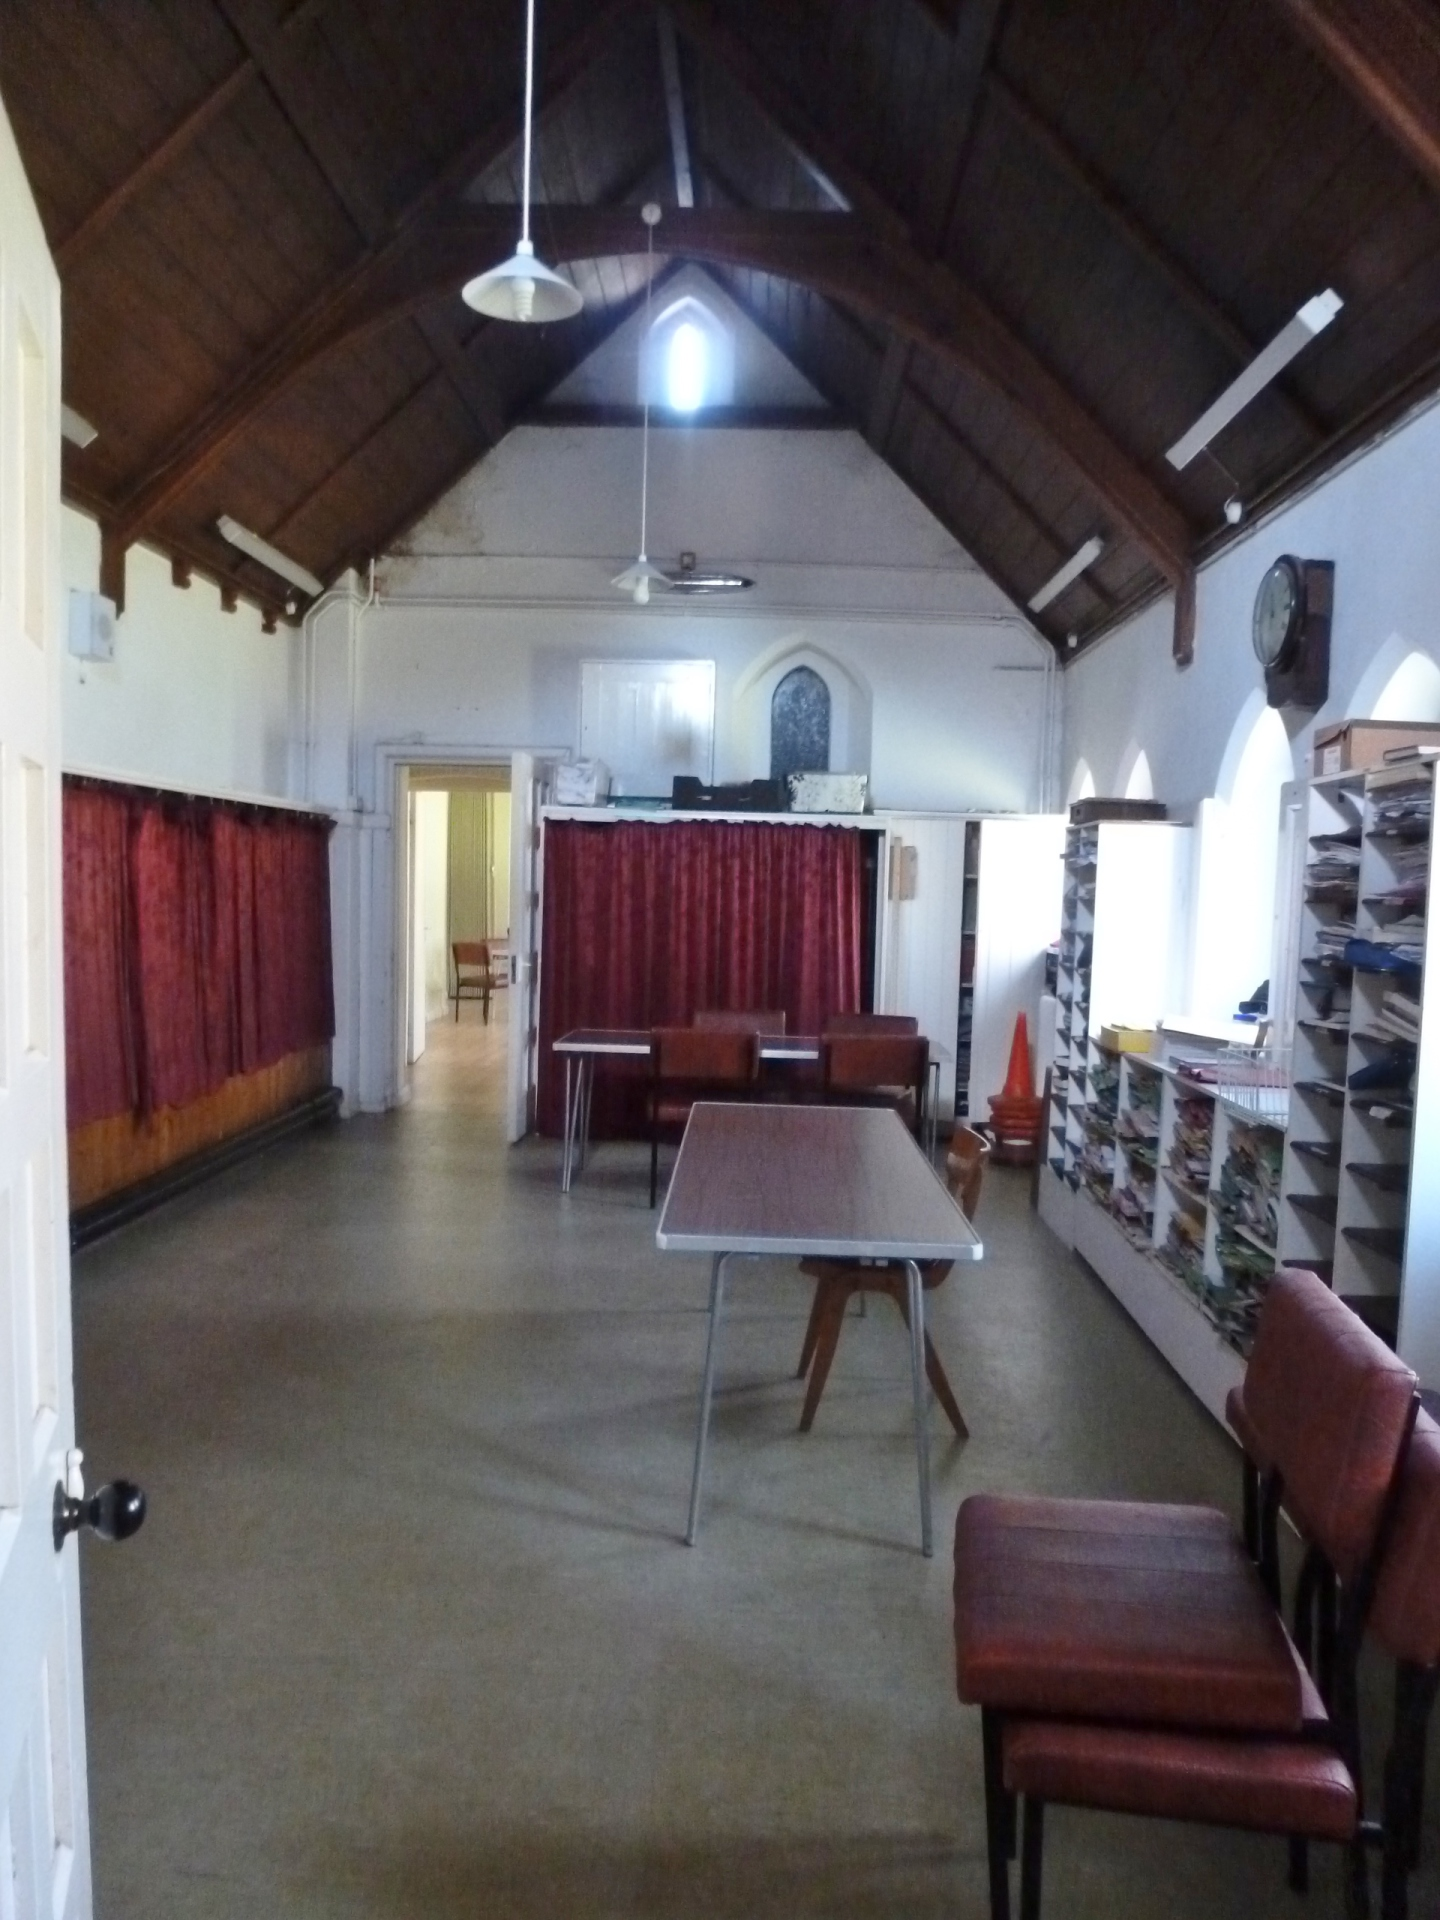 Choir Vestry at St. Botolph's Church, Heene